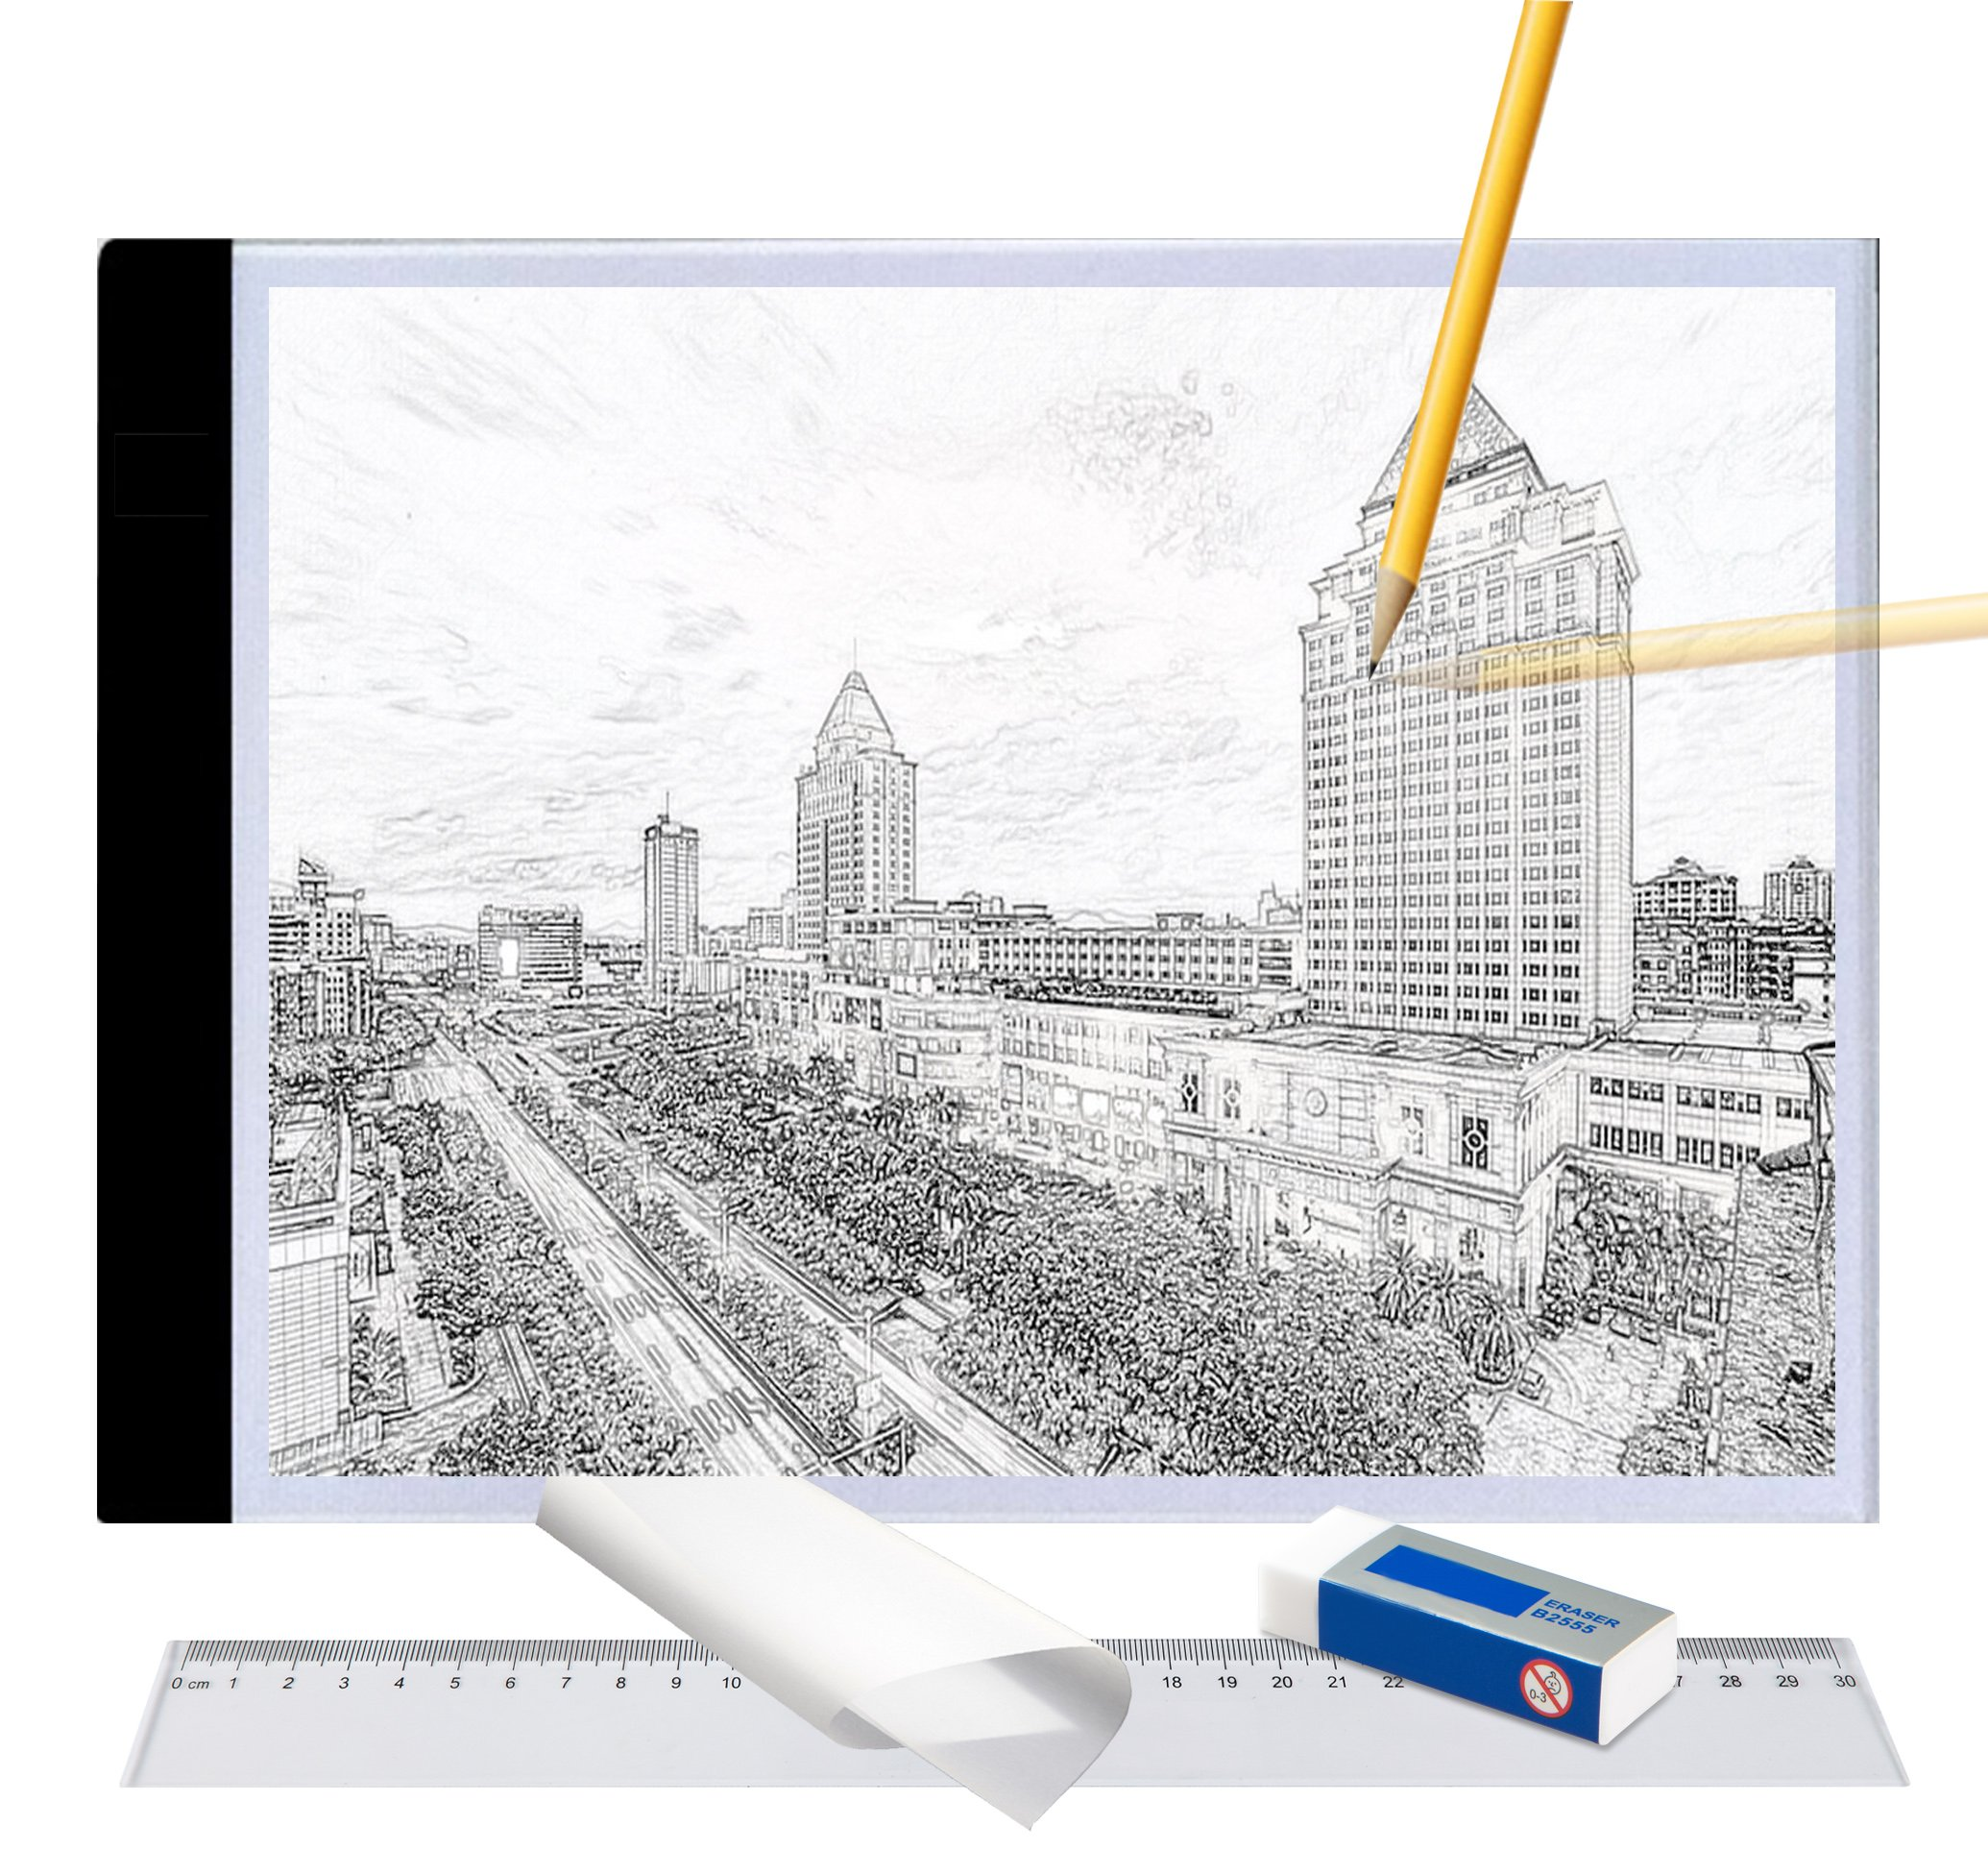 A4 Ultra-Thin Portable LED Light Box Tracer USB Power LED Artcraft Tracing Light Pad Light Box w Tracing Paper Ruer Erase for 5D DIY Diamond Painting,Artists,Drawing,Sketching,Animation by Tikteck